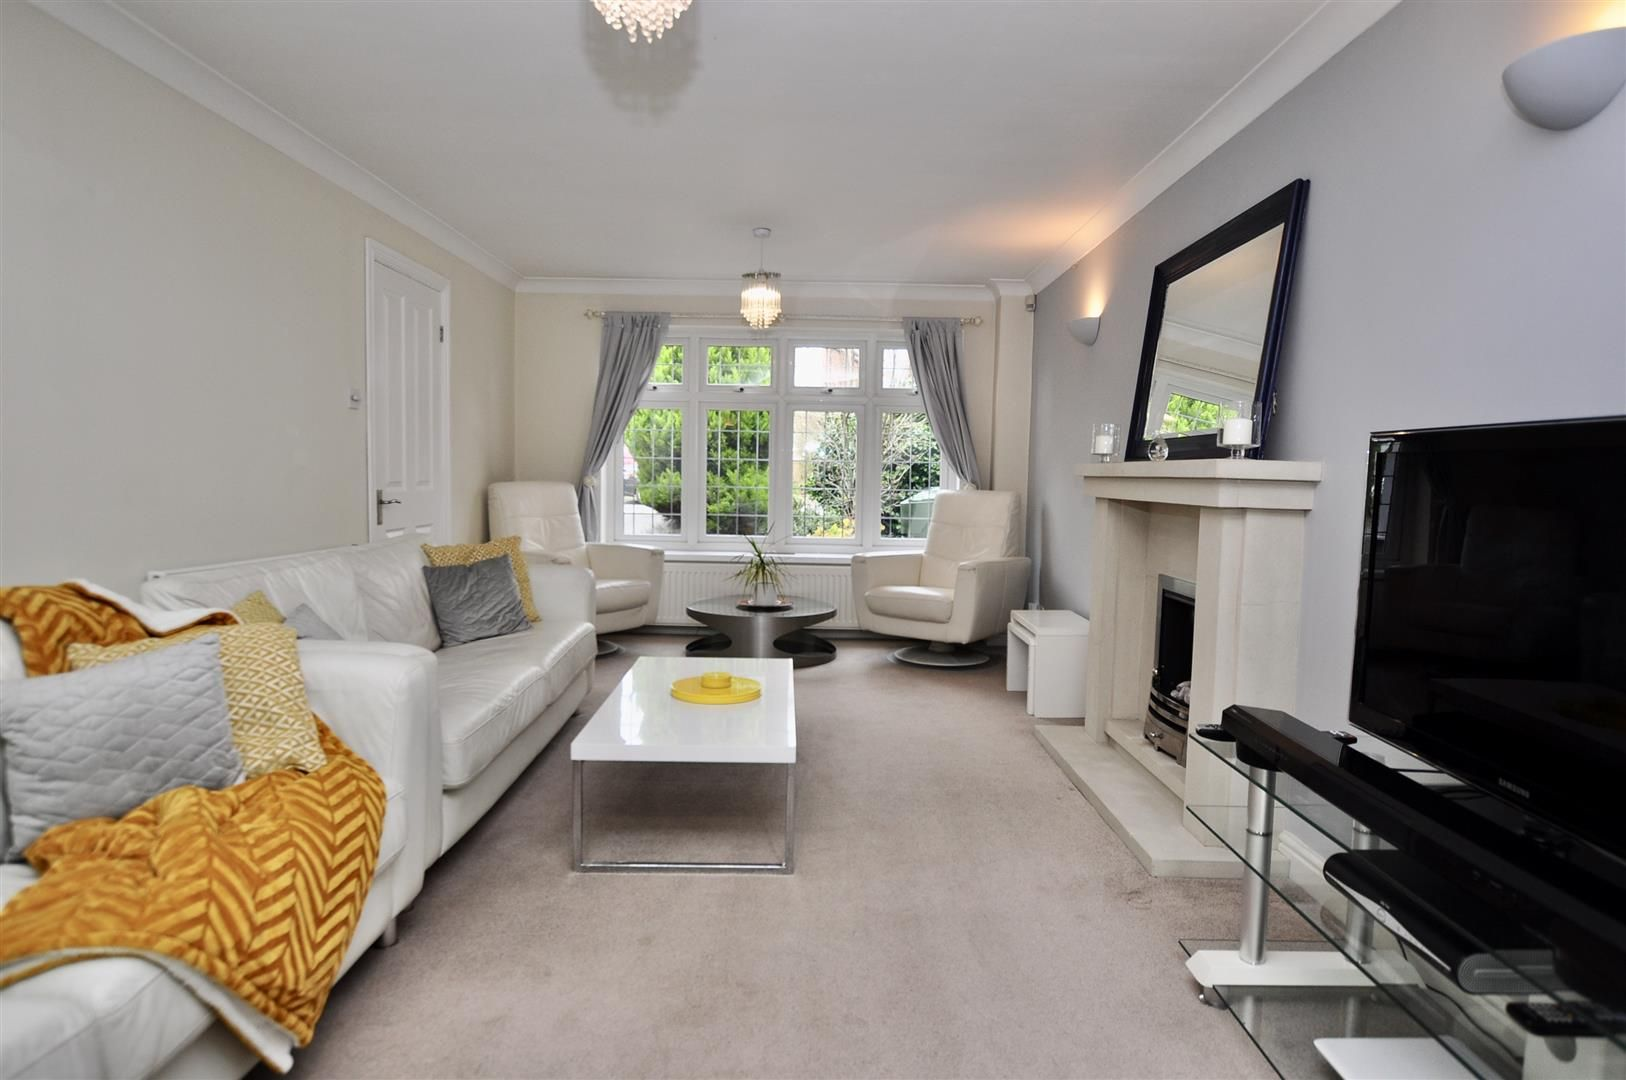 4 bed house for sale in Hagley  - Property Image 14